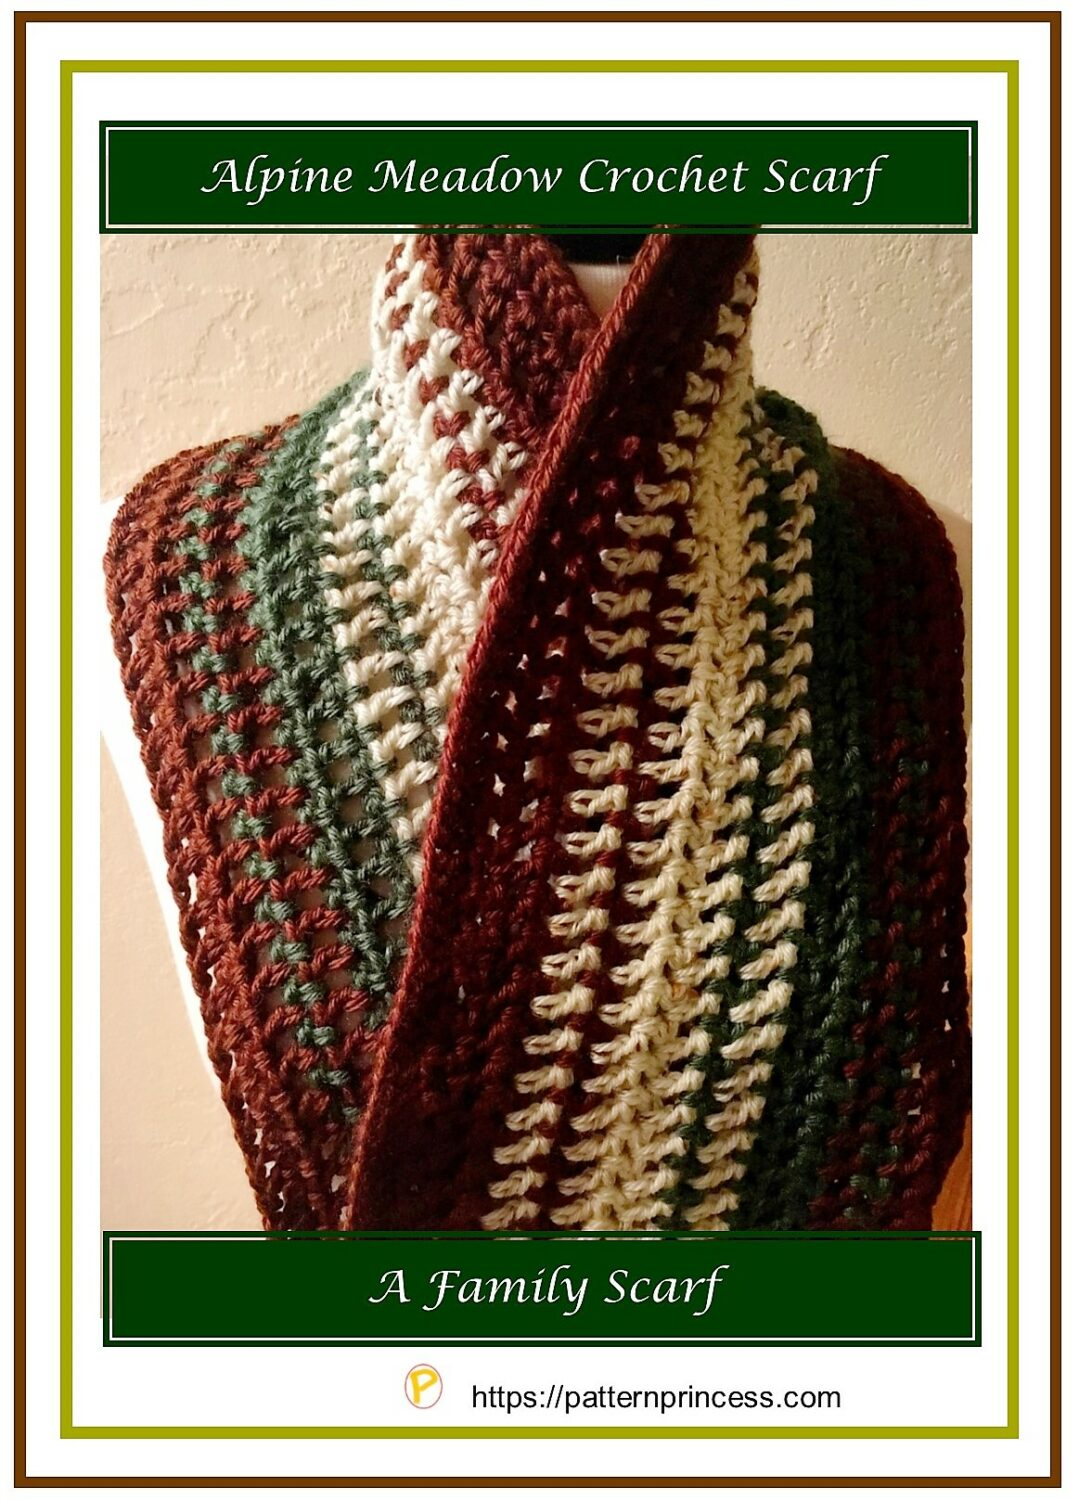 Alpine Meadow Crochet Scarf 1